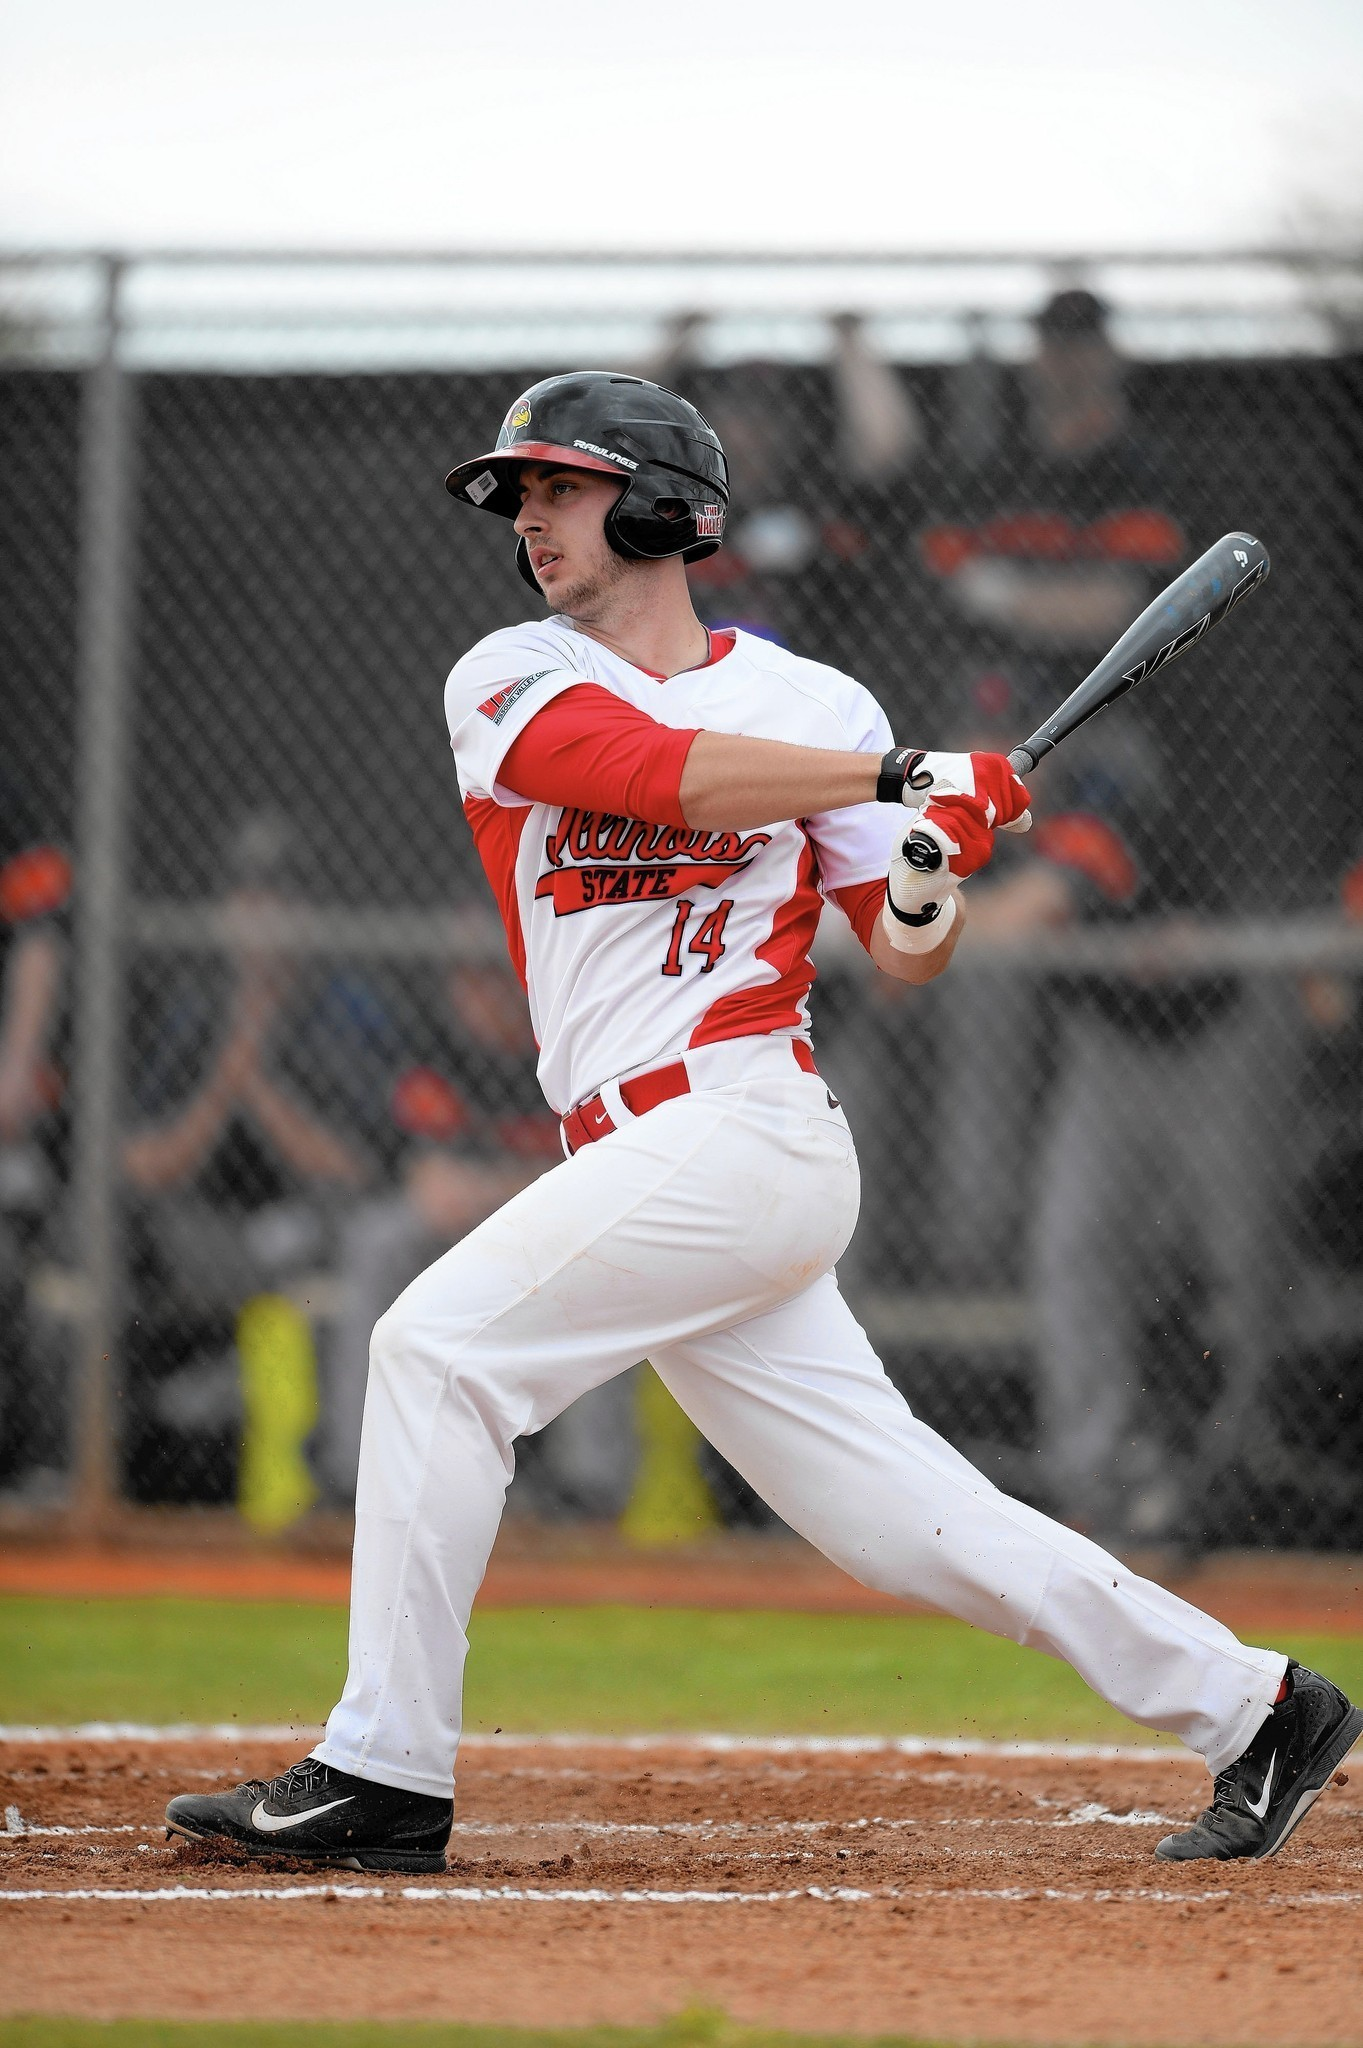 Antioch grad Paul DeJong of Illinois State a likely MLB